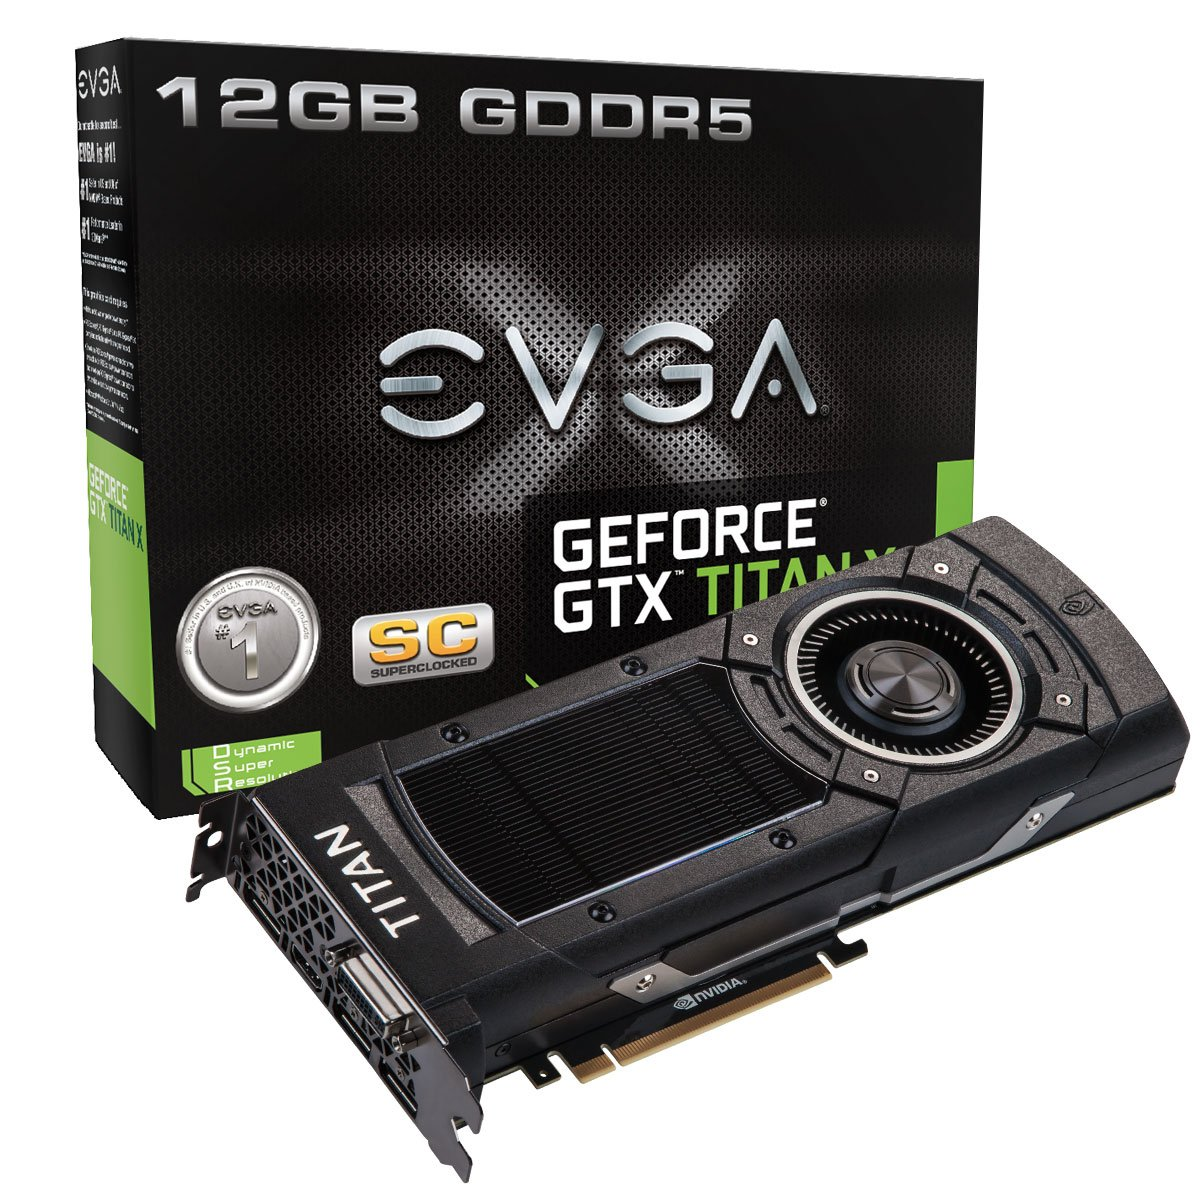 nvidia geforce gt 730 driver 378.92